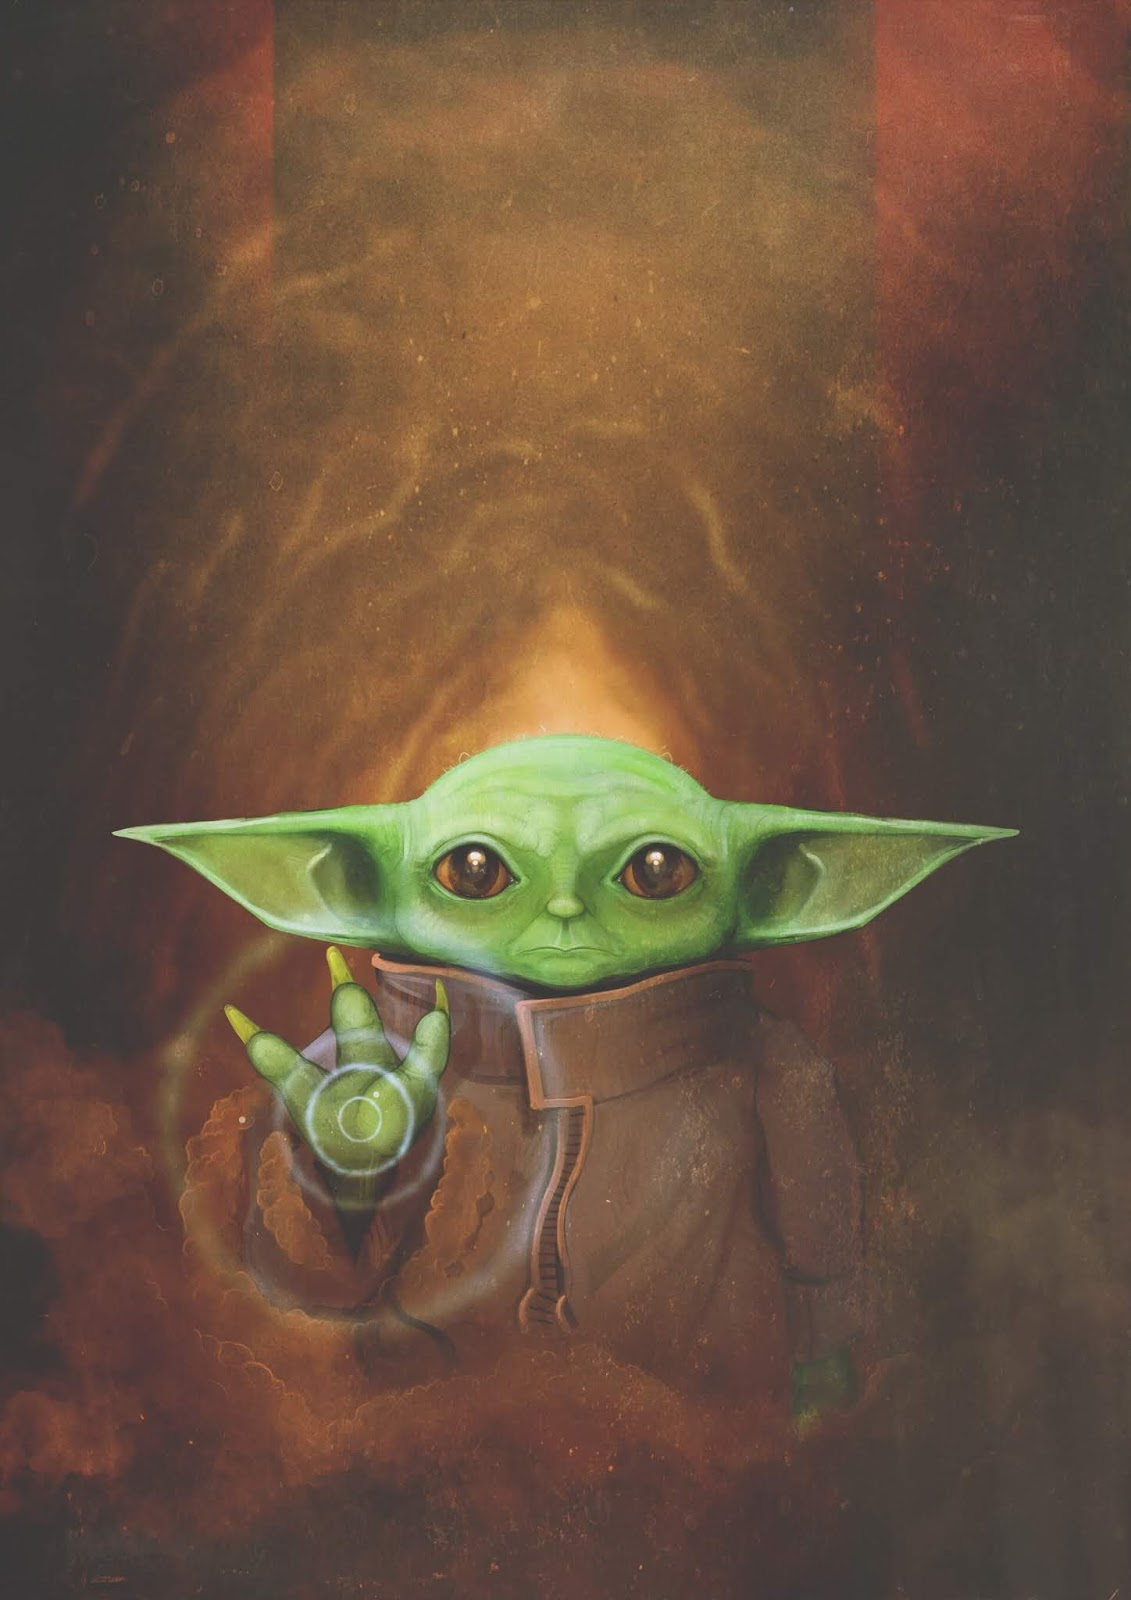 Baby Yoda Wallpaper Iphone Baby Yoda Wallpaper Android 2992707 Hd Wallpaper Backgrounds Download